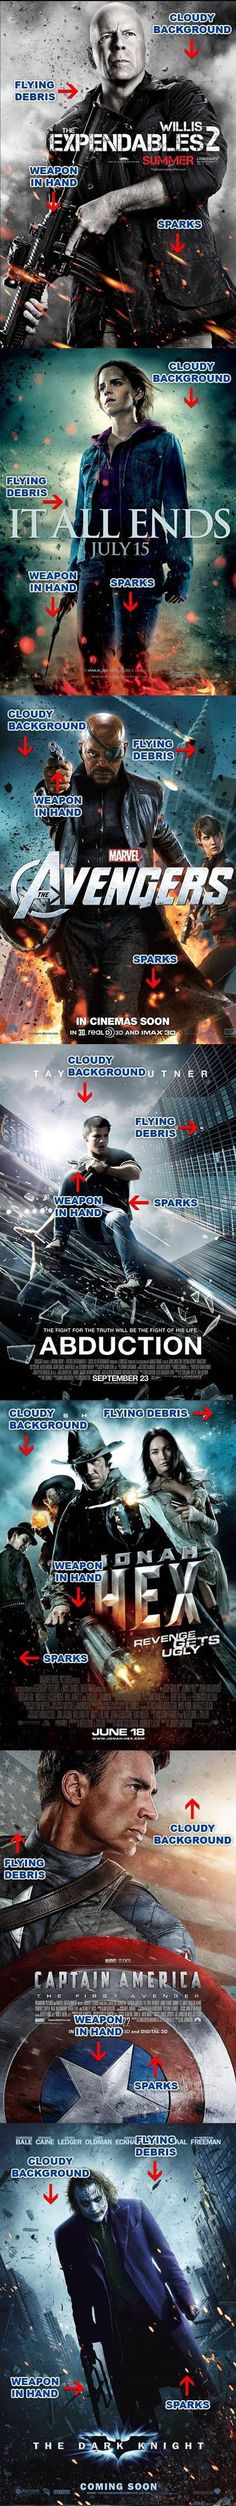 New Trend in Action Movie Poster Design: I think I need to get me some pictures like this